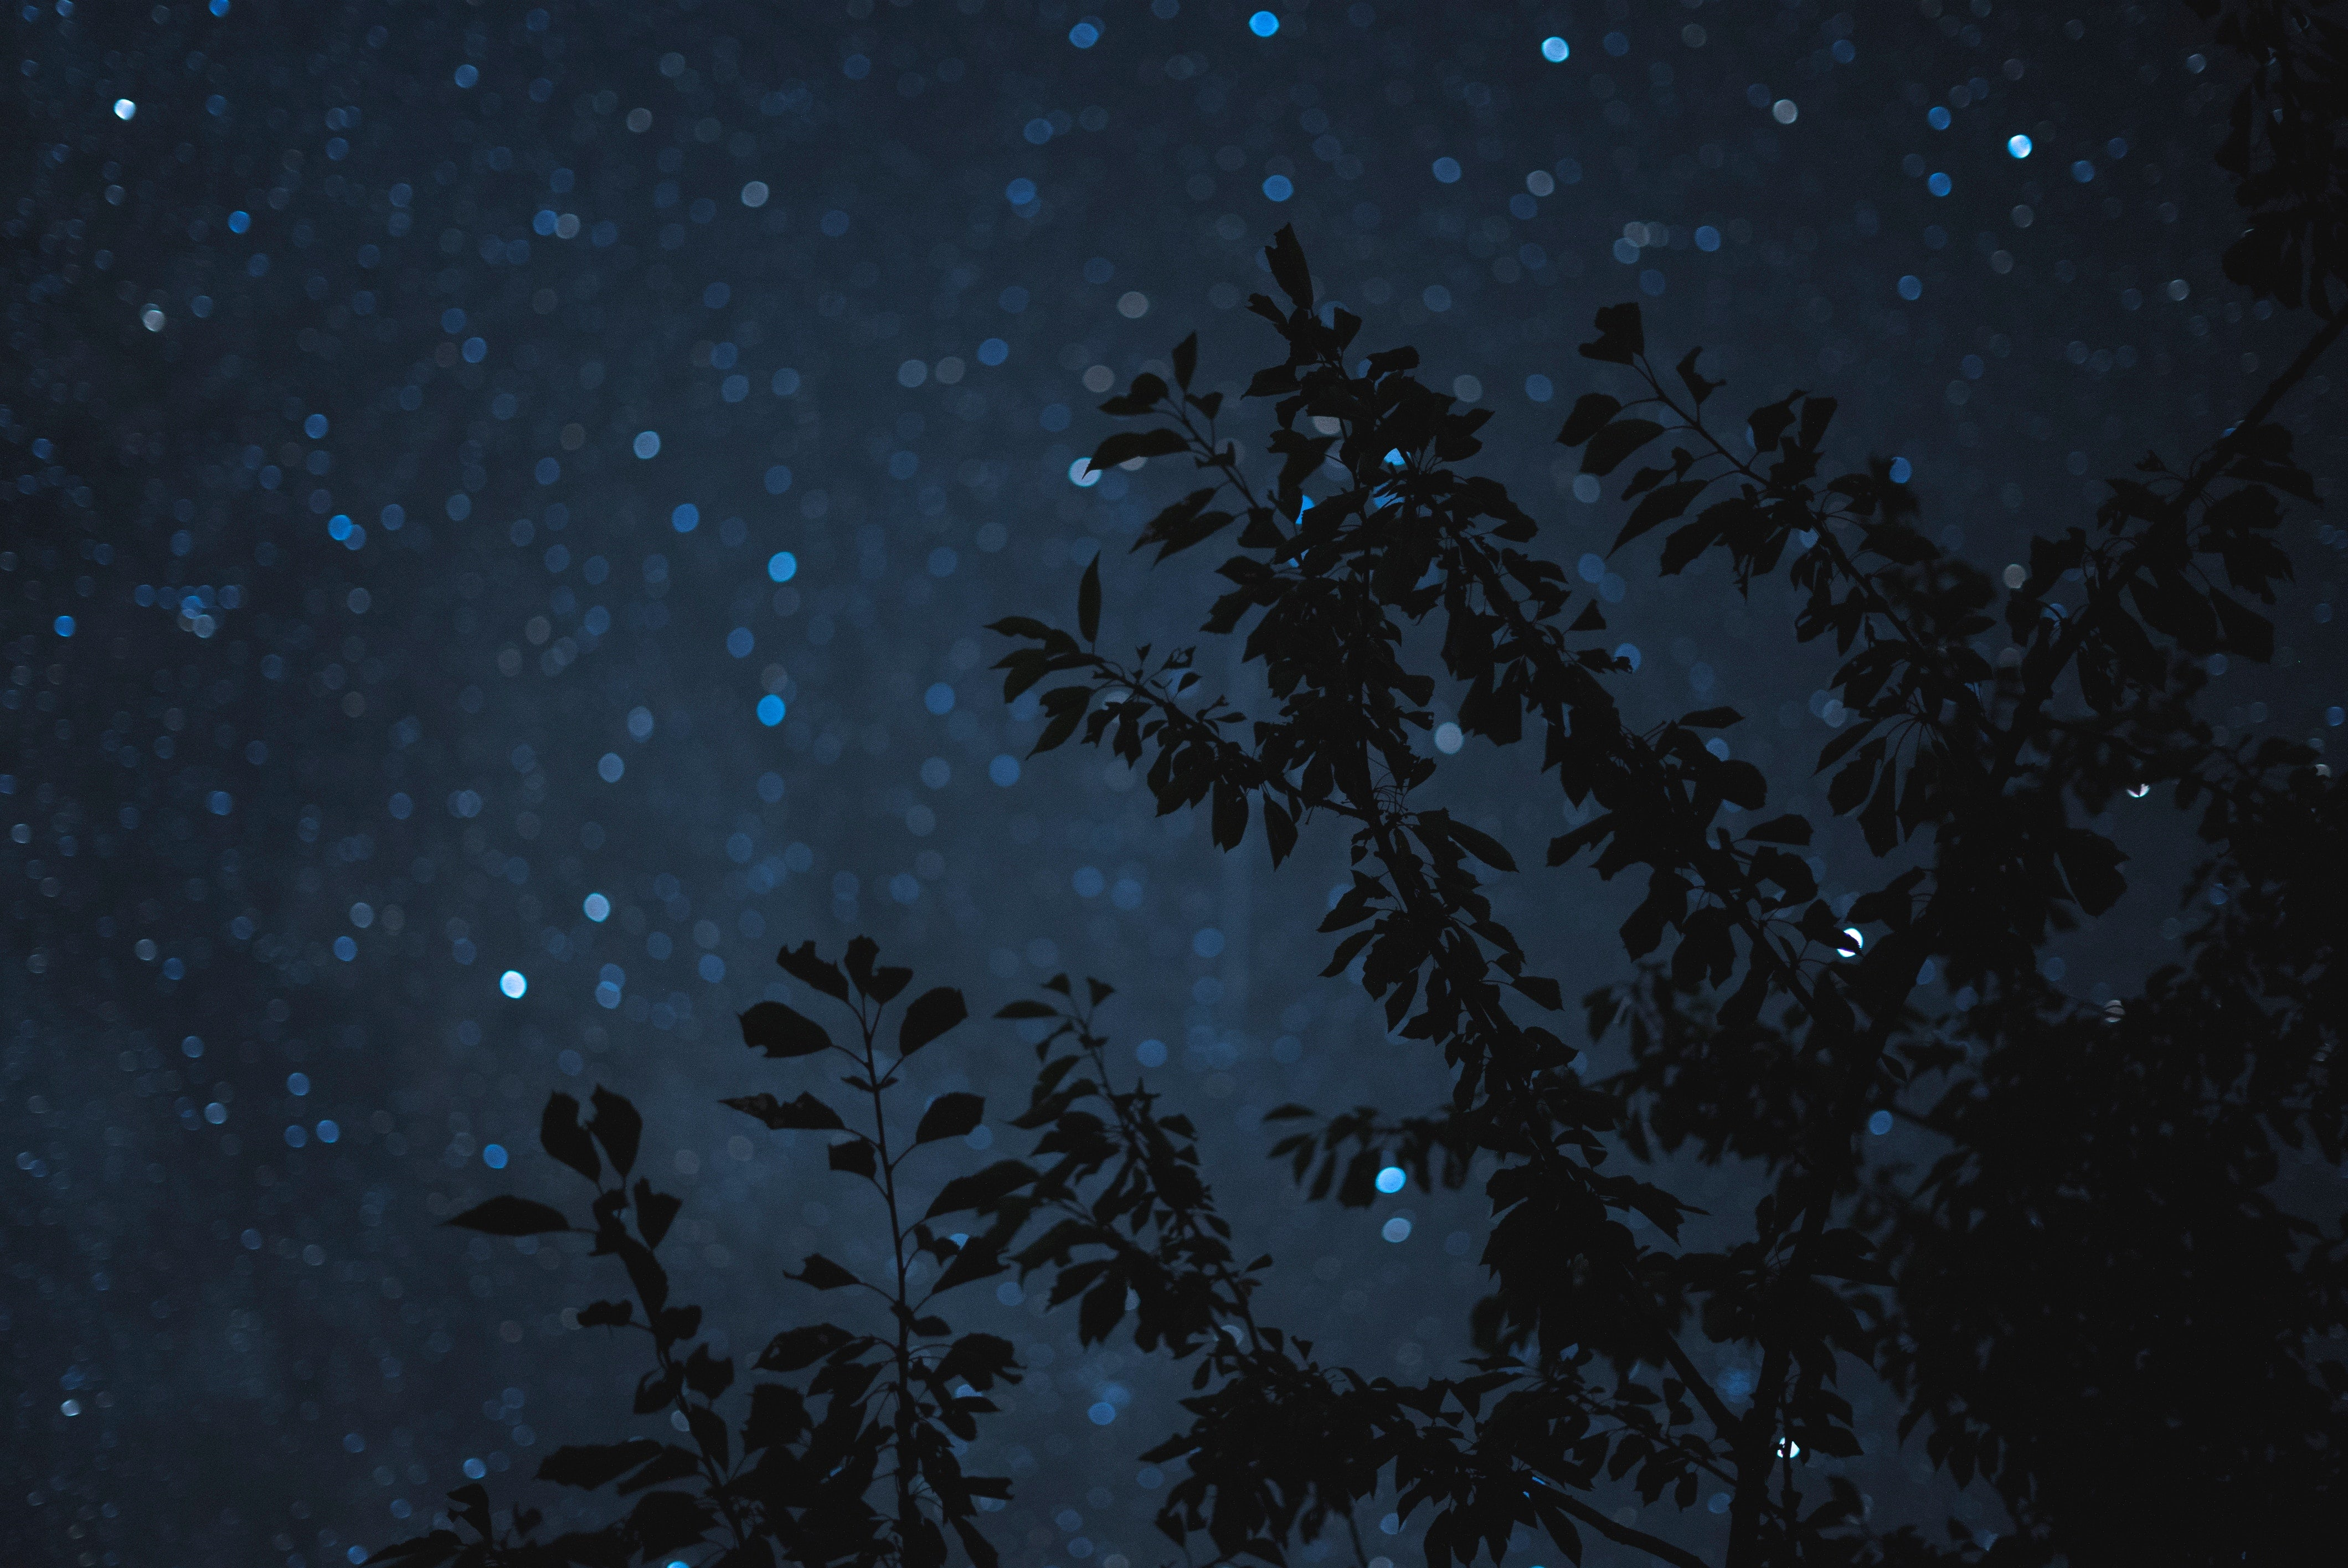 Leaf silhouette on a dark starlit night, telling the myths and legends of the constellation Lyra and its brightest star, Vega  | Talsam